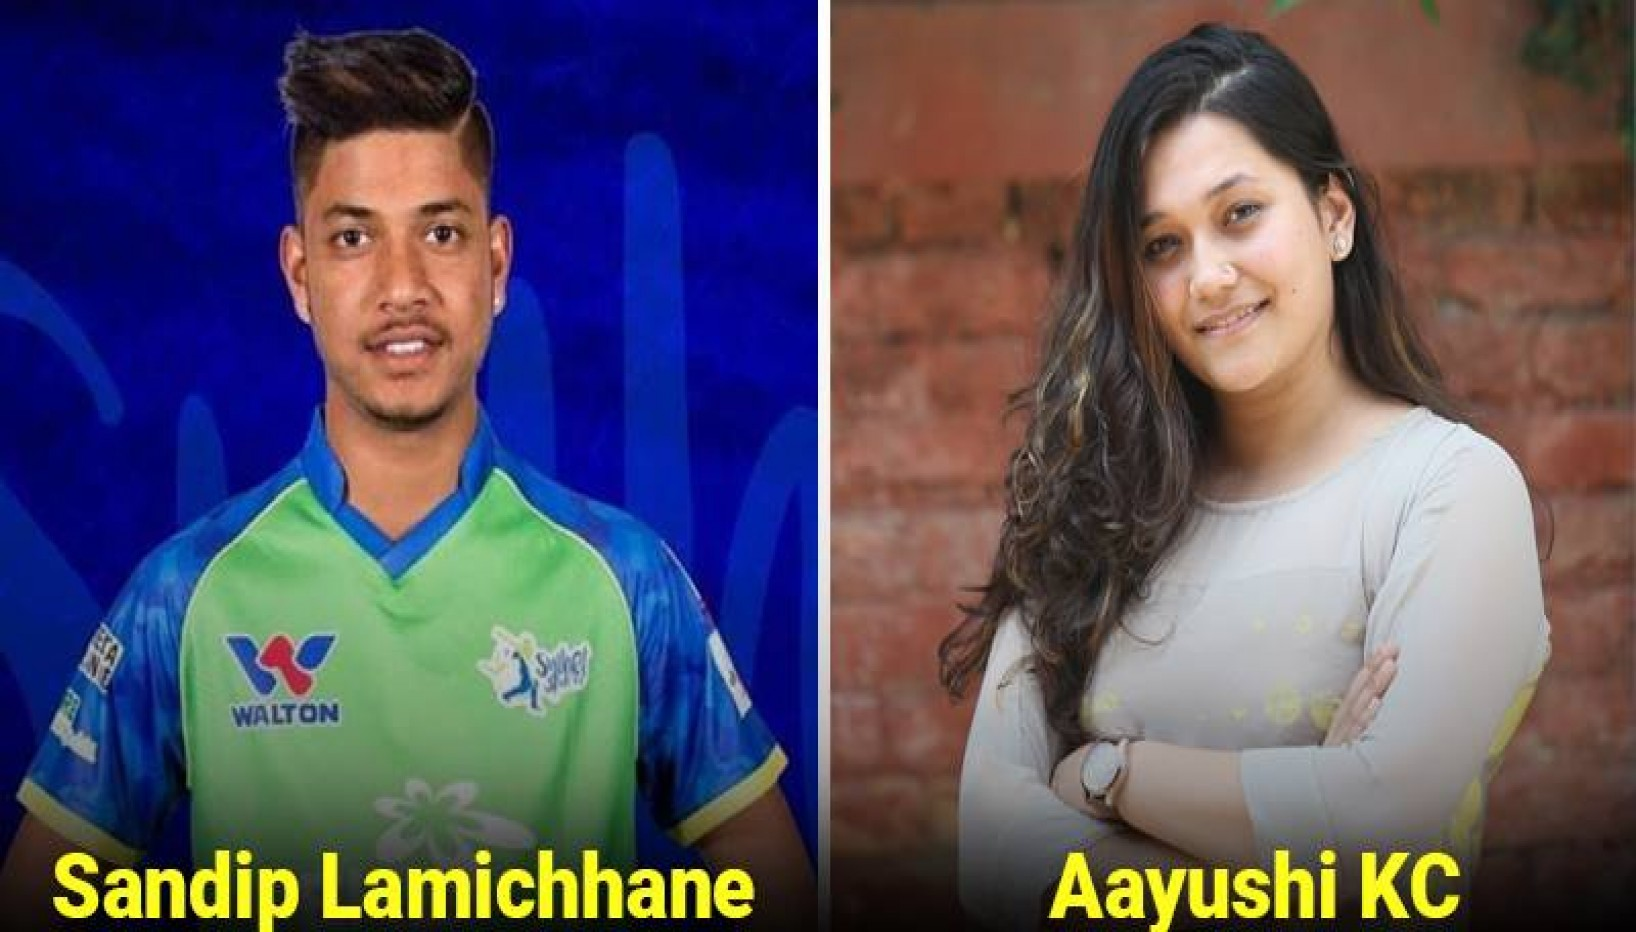 16 Young Nepali Personalities Who Inspire Us And Make Us Proud